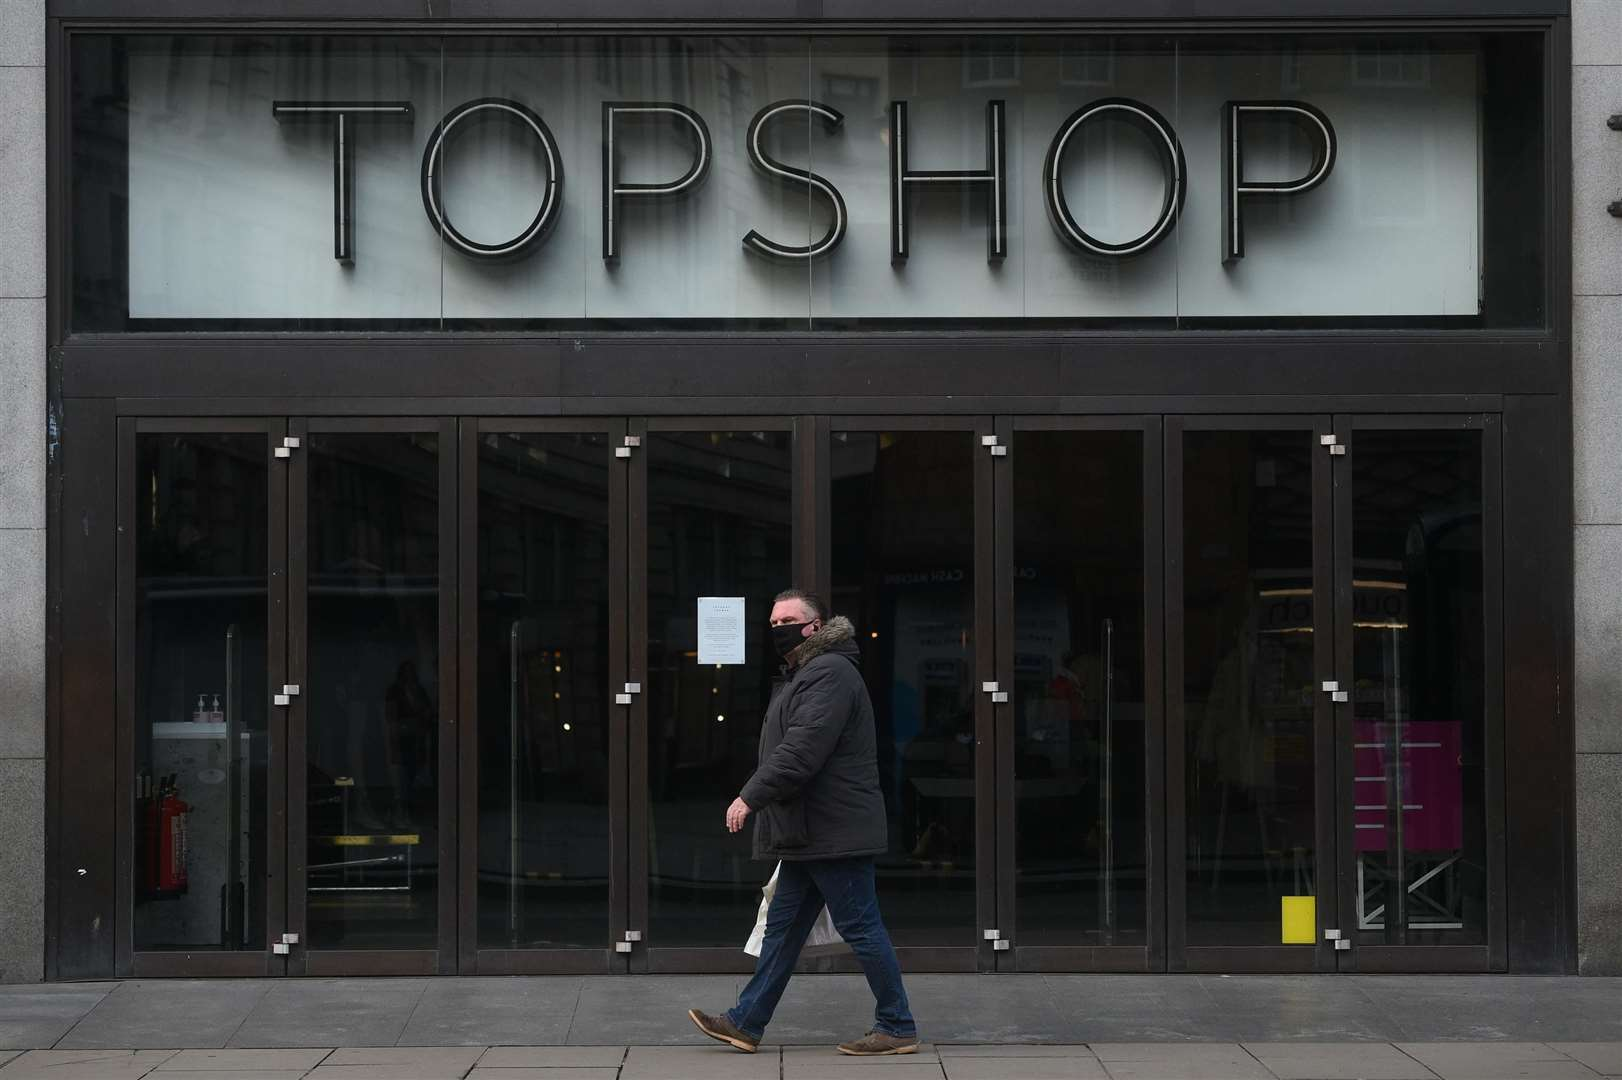 Topshop is owned by Arcadia